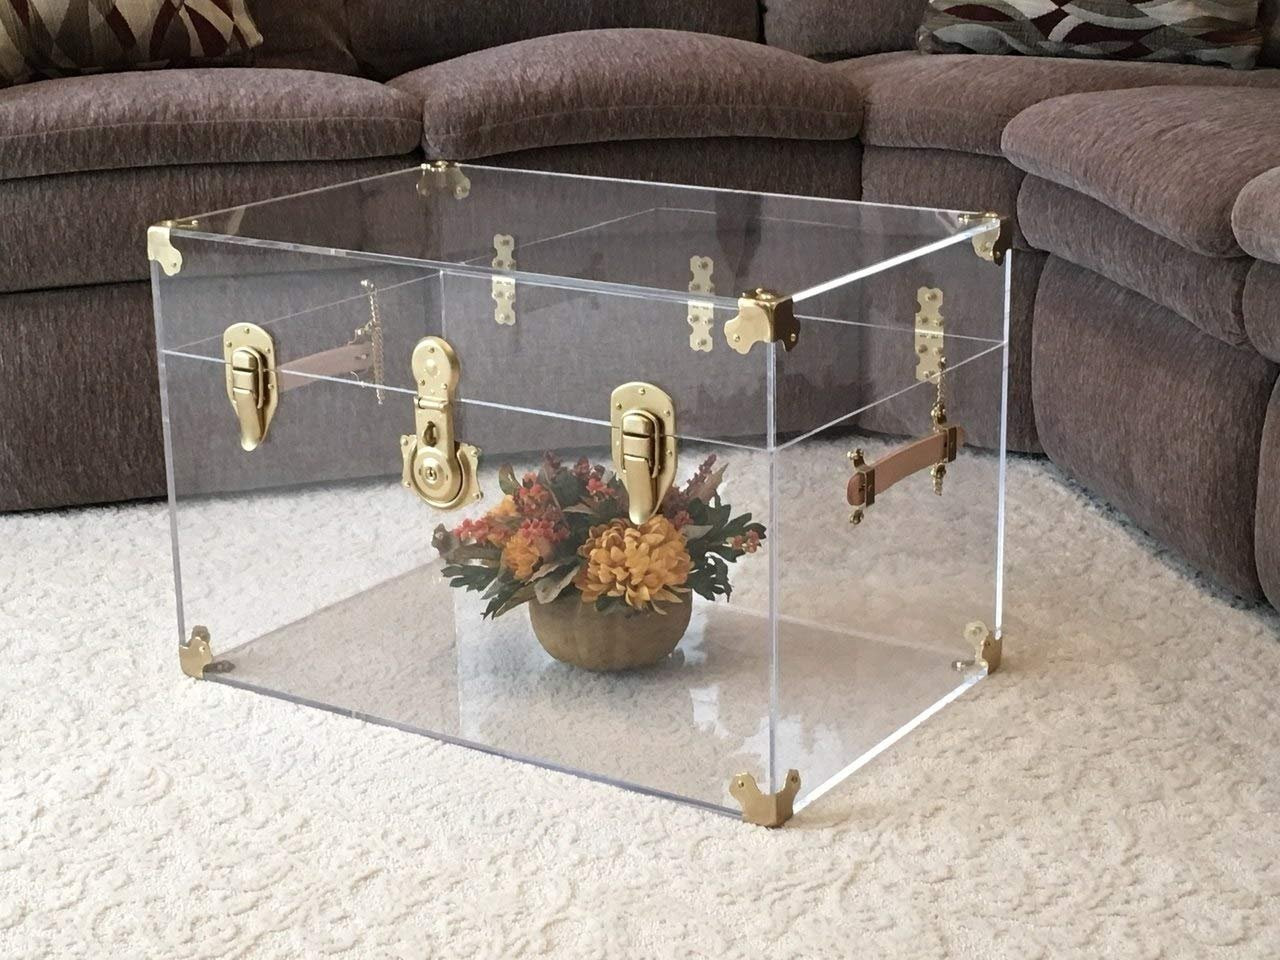 Flat-Top Clear Acrylic Trunk, 28 inches Wide x 18 inches deep x 16 inches high, Brass Hardware